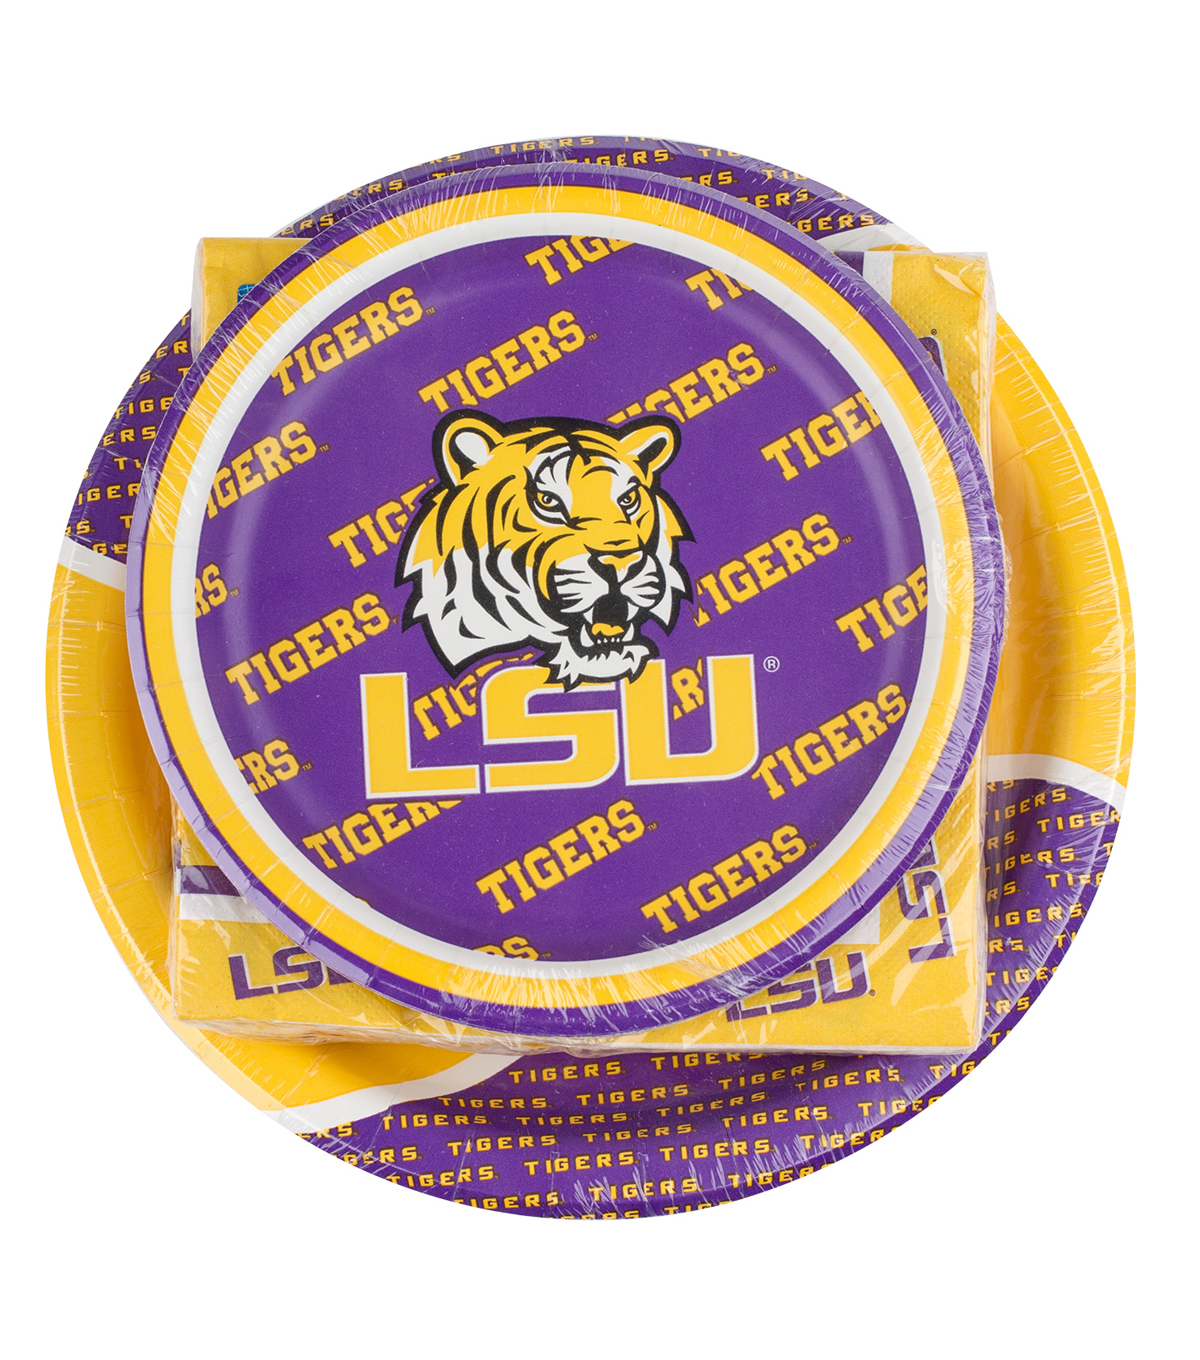 Louisiana State University Tigers Plate & Napkin Set